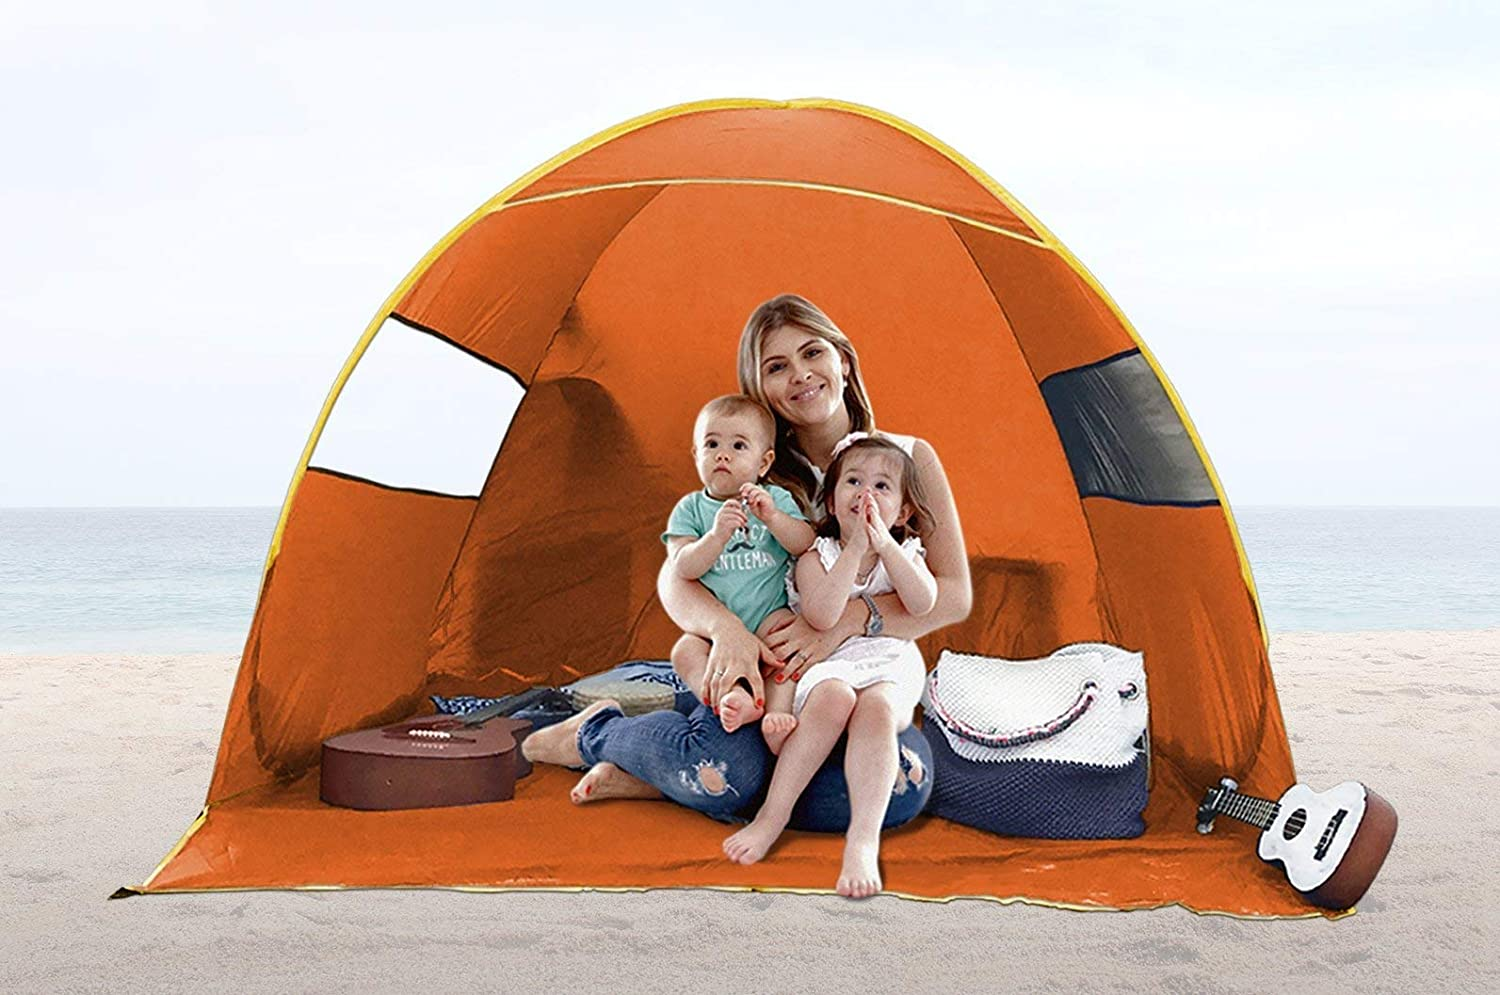 FiveJoy Instant Pop Up Beach Families Shade Beach Tent with UV FiveJoy Protection - Easy Setup and Transport - Must Have Sun Shelter for Families with Babies and Toddlers - Great for Picnics, Barbecues, Open-Air Concerts … [並行輸入品] B07R3YWC5Y, Me-maine(ミーマイン):c27c9146 --- number-directory.top